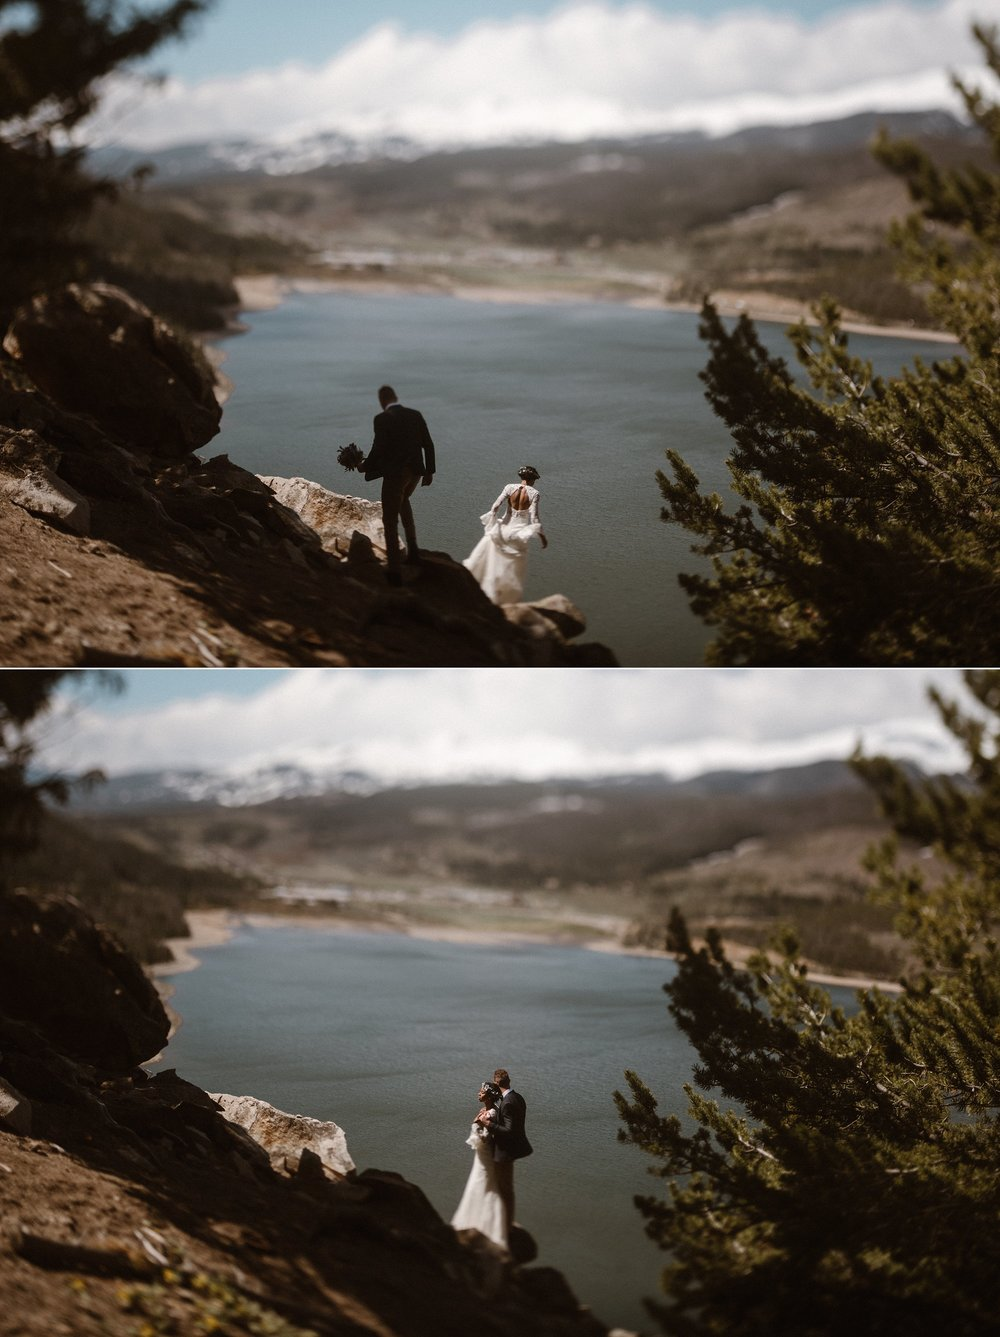 Pausing high above Dillon reservoir with the sun at their faces, Jared whispered promises made only for Mikayla to hear at their intimate mountain elopement. Photos of this vintage inspired couple by Colorado native, Maddie Mae Photography.